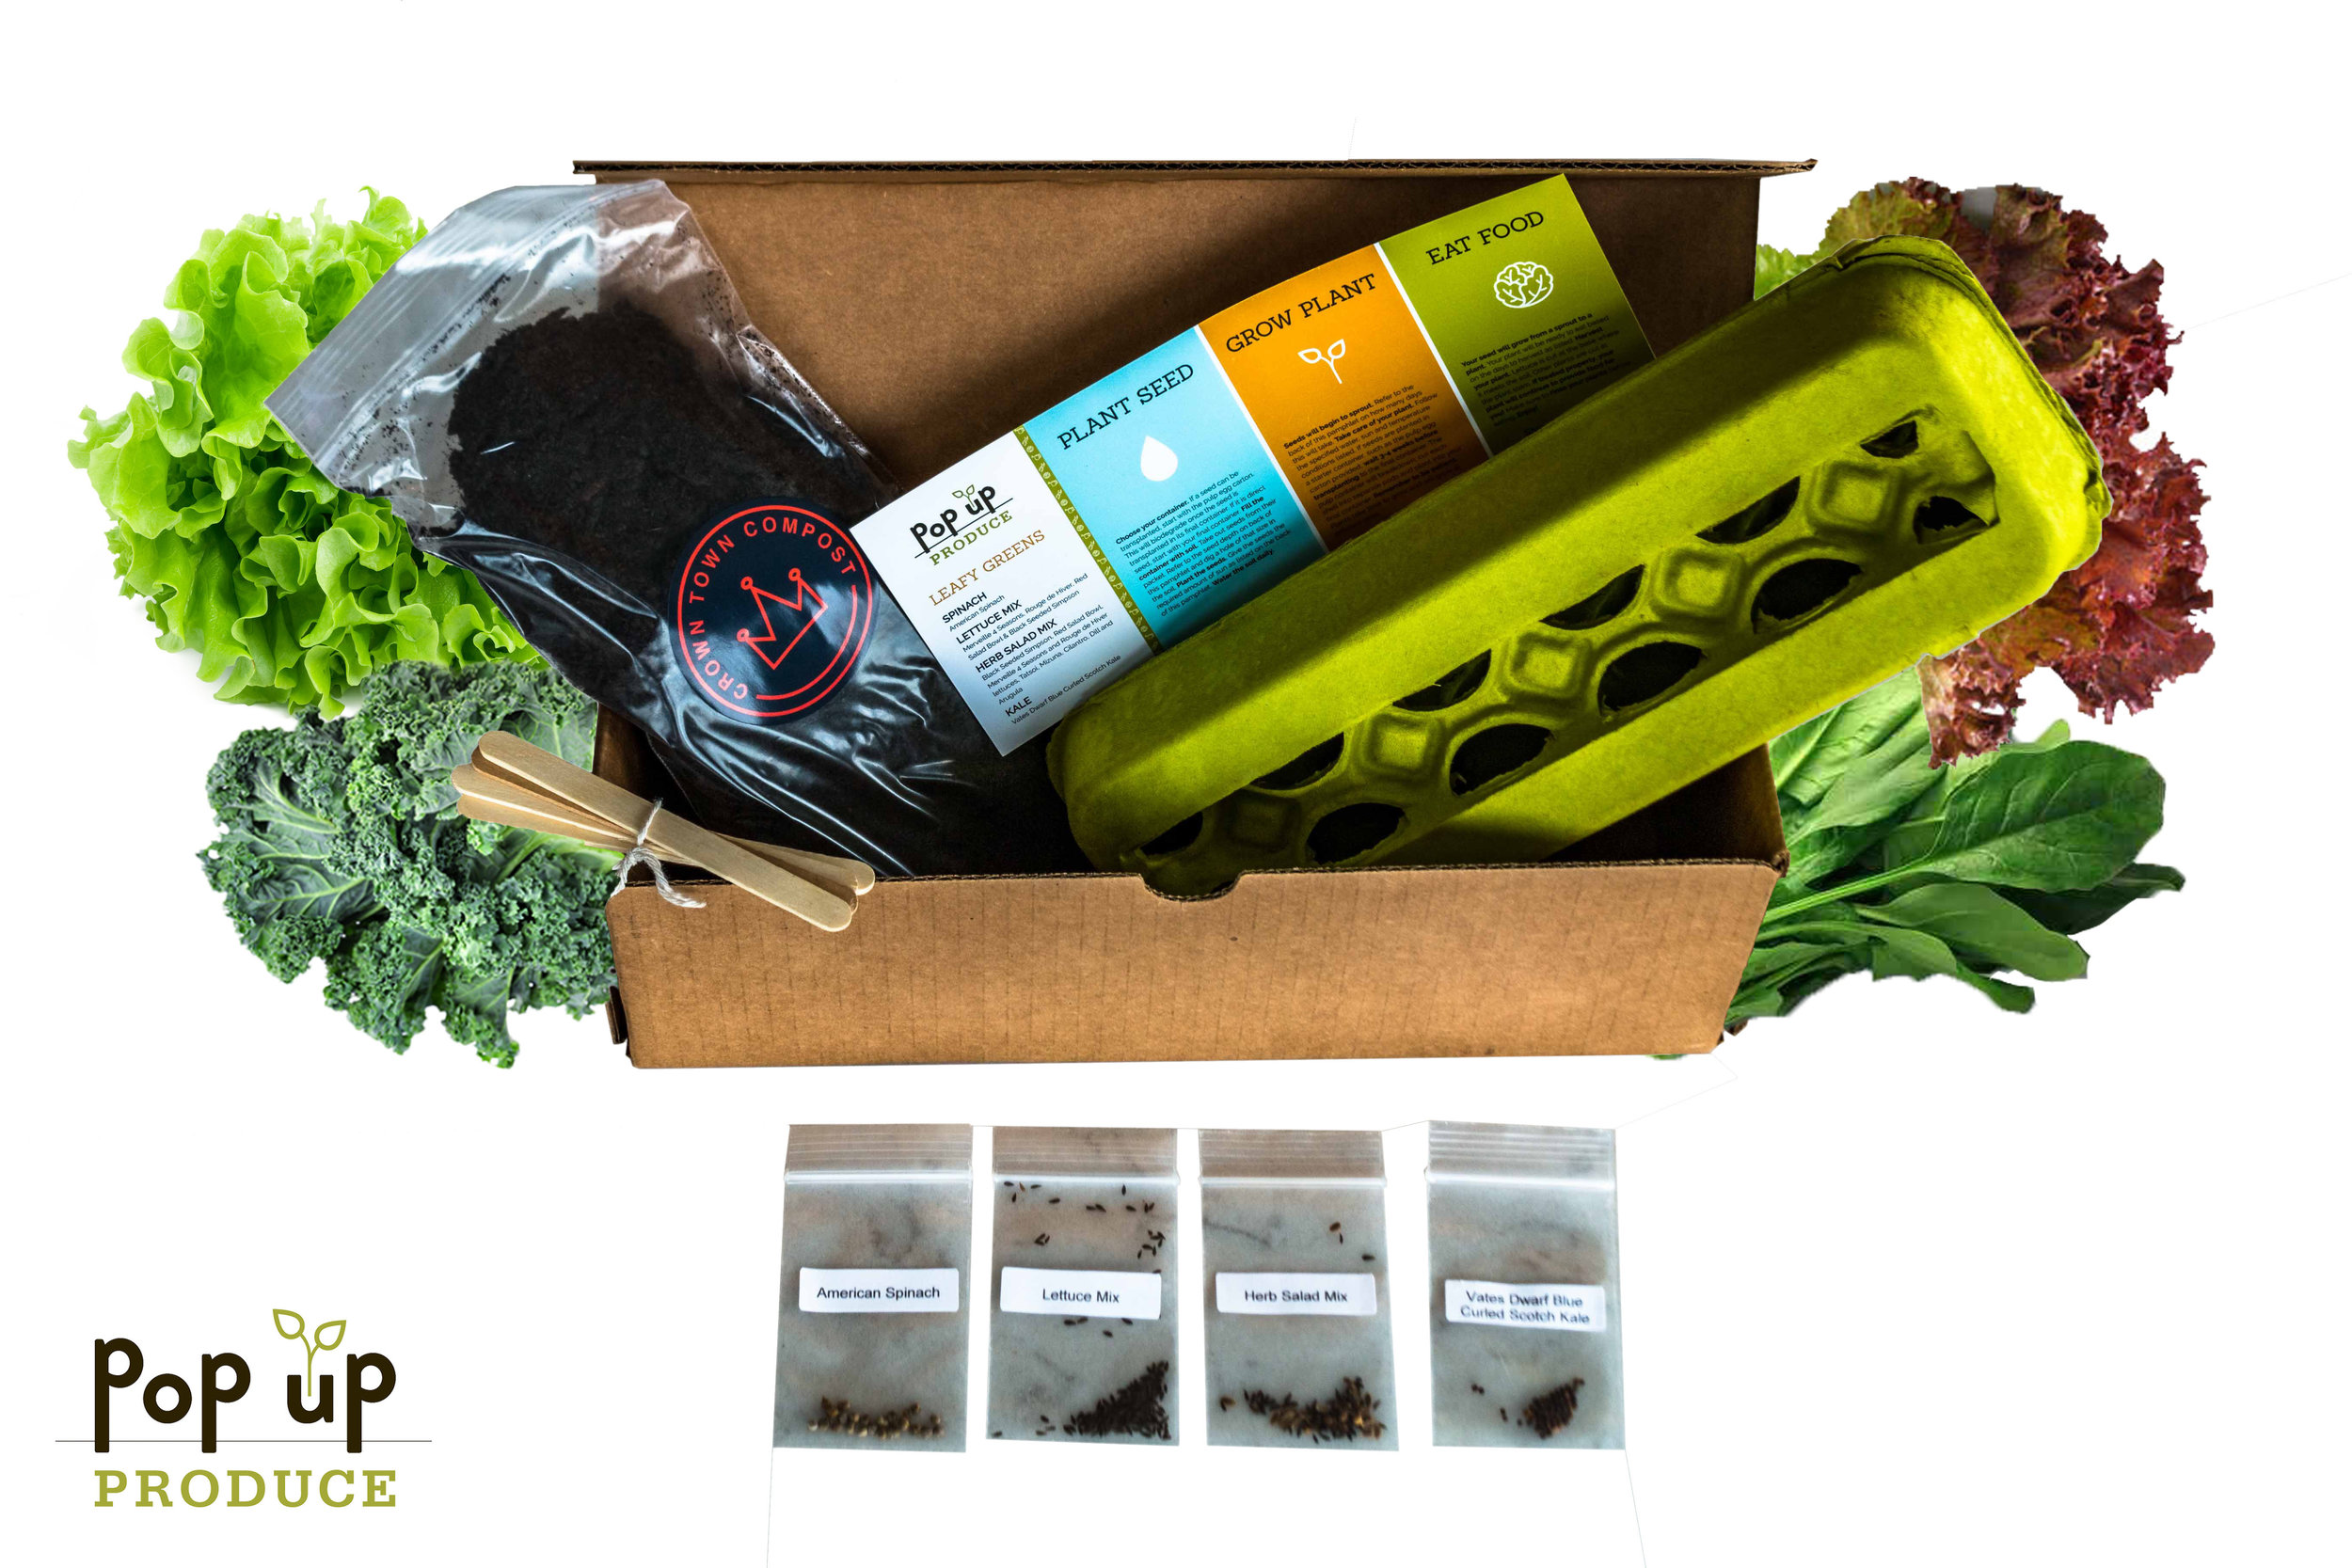 Pop Up Produce Product Shots for Web Leafy Greens (2).jpg